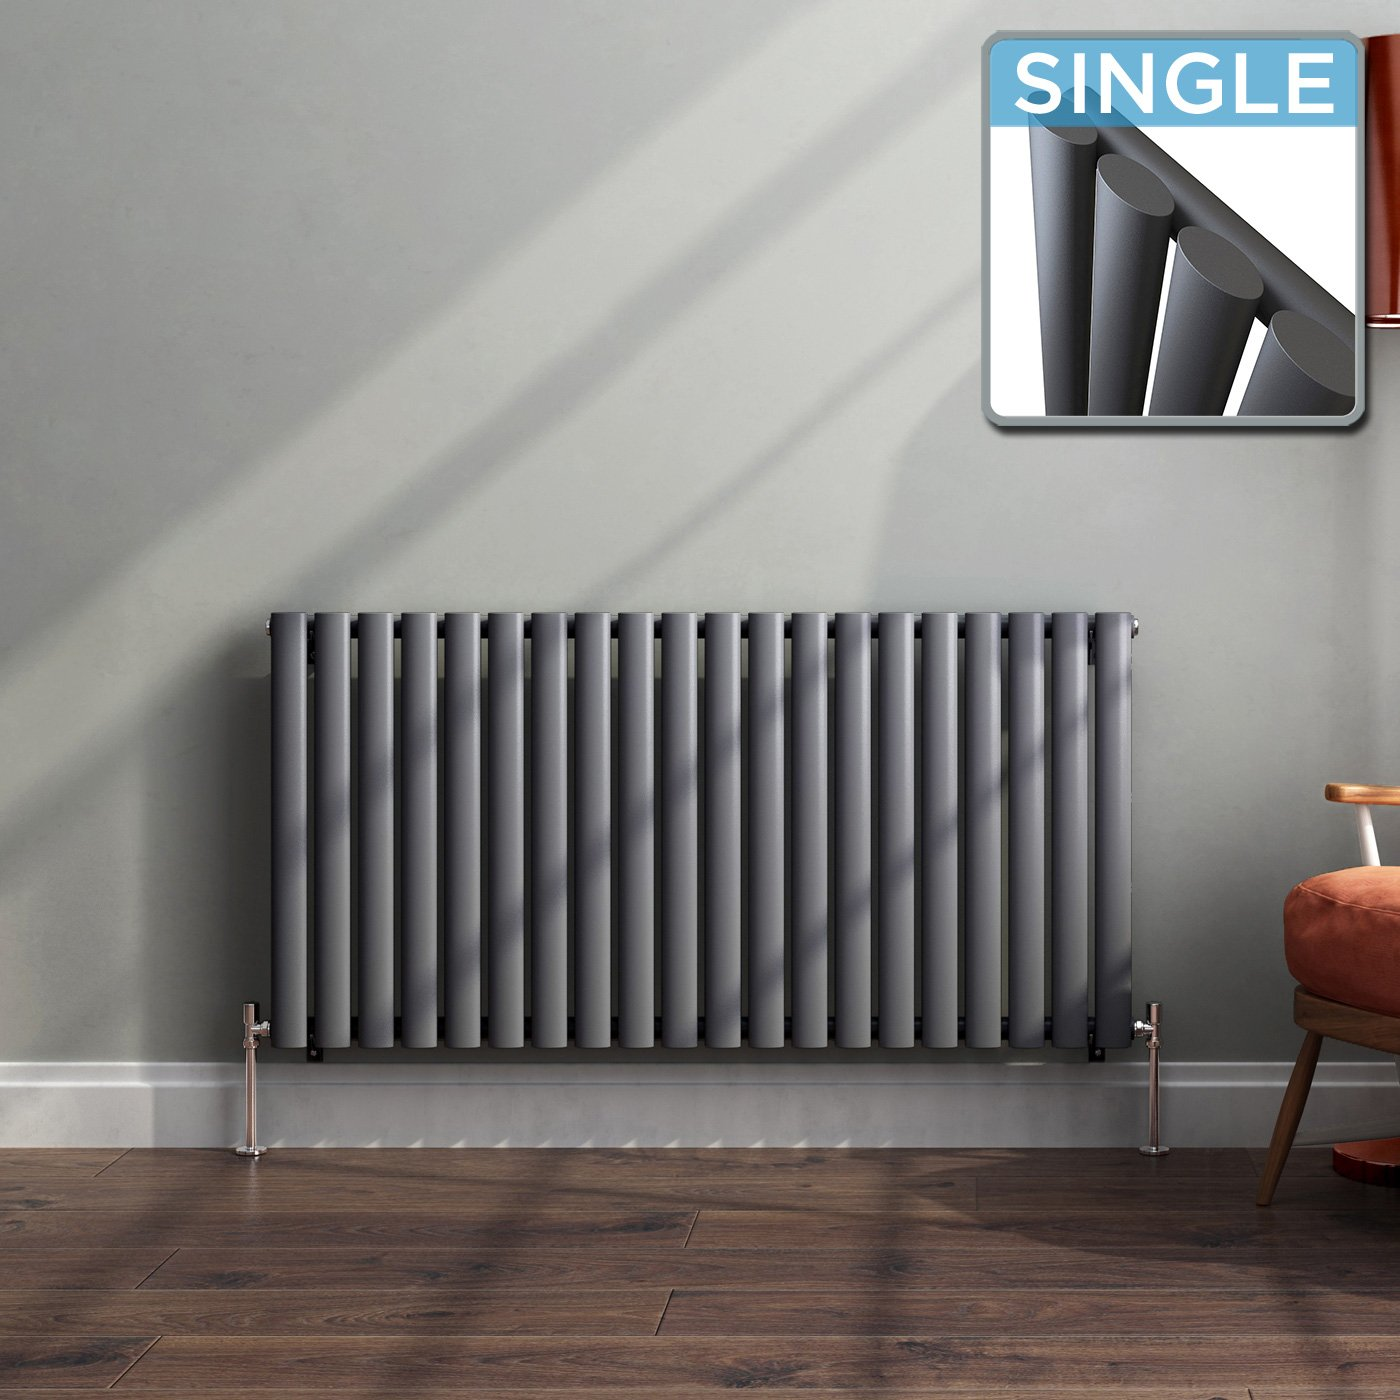 iBathUK 600 x 420 mm Modern Horizontal Column Radiator Anthracite Oval Single Panel